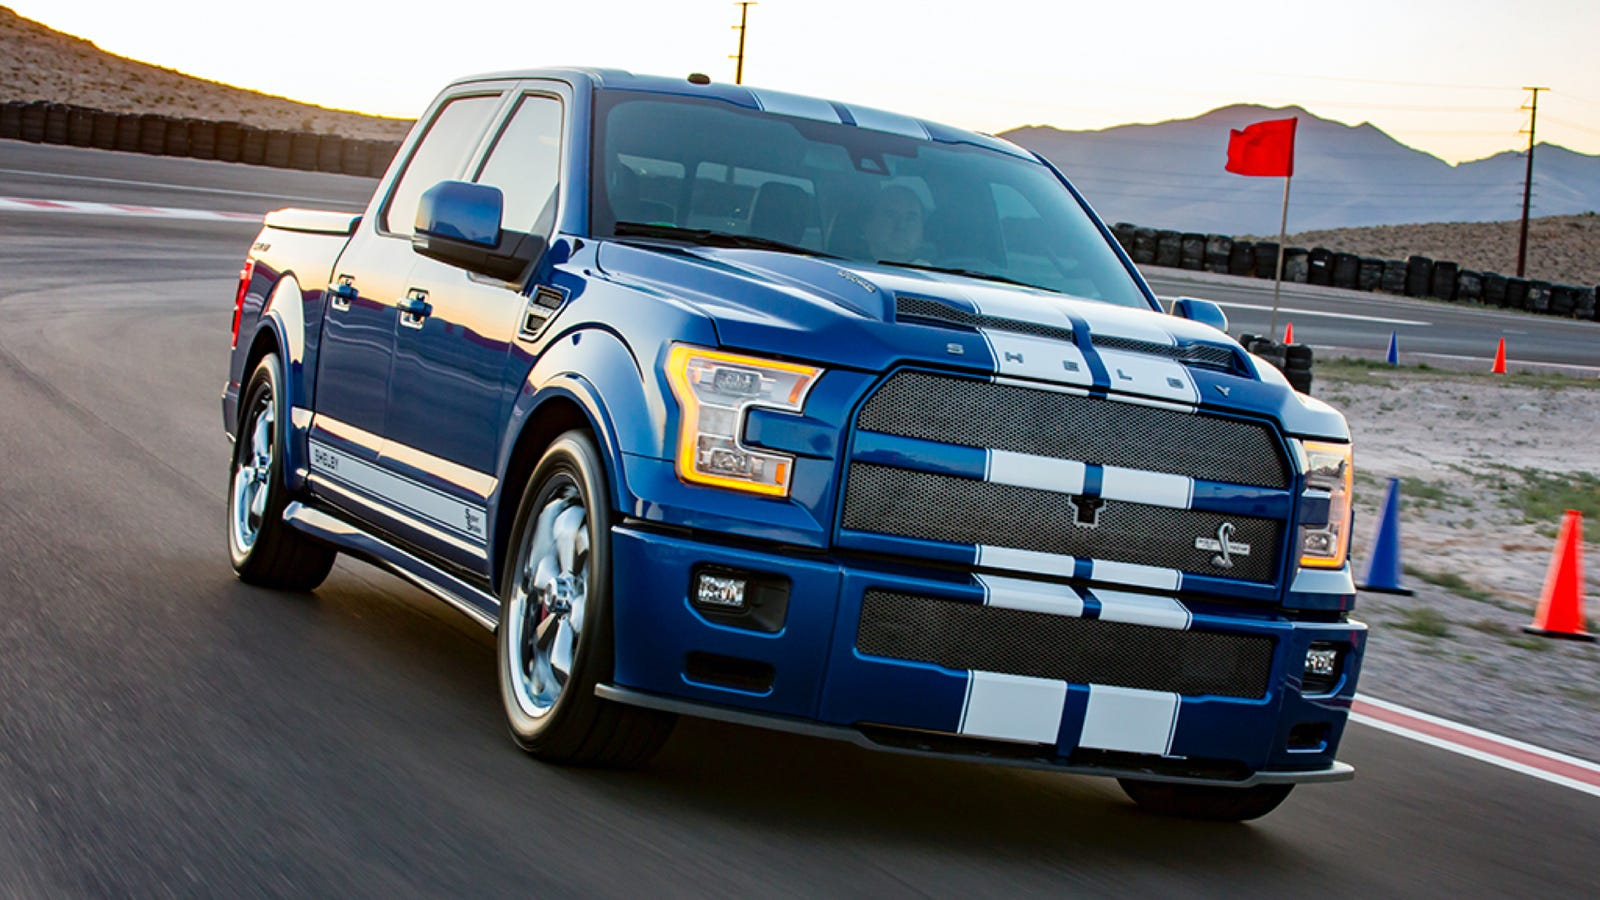 The 750 hp shelby f 150 super snake is murica in truck form